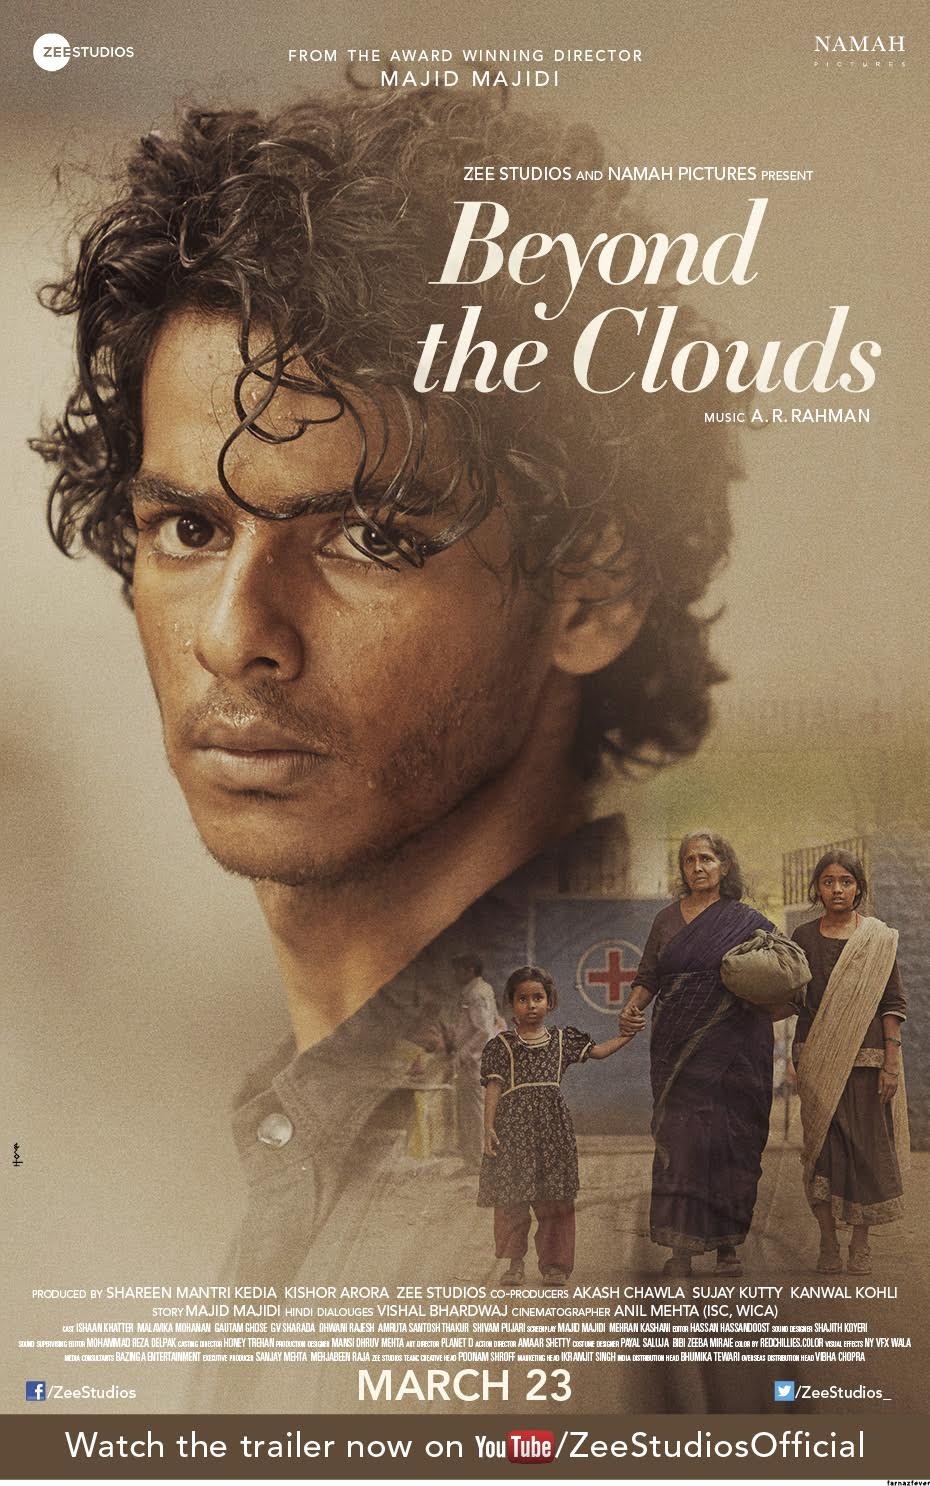 Beyond The Clouds (2018) Hindi BDRip 720p 1.5GB AC3 5.1 ESubs MKV